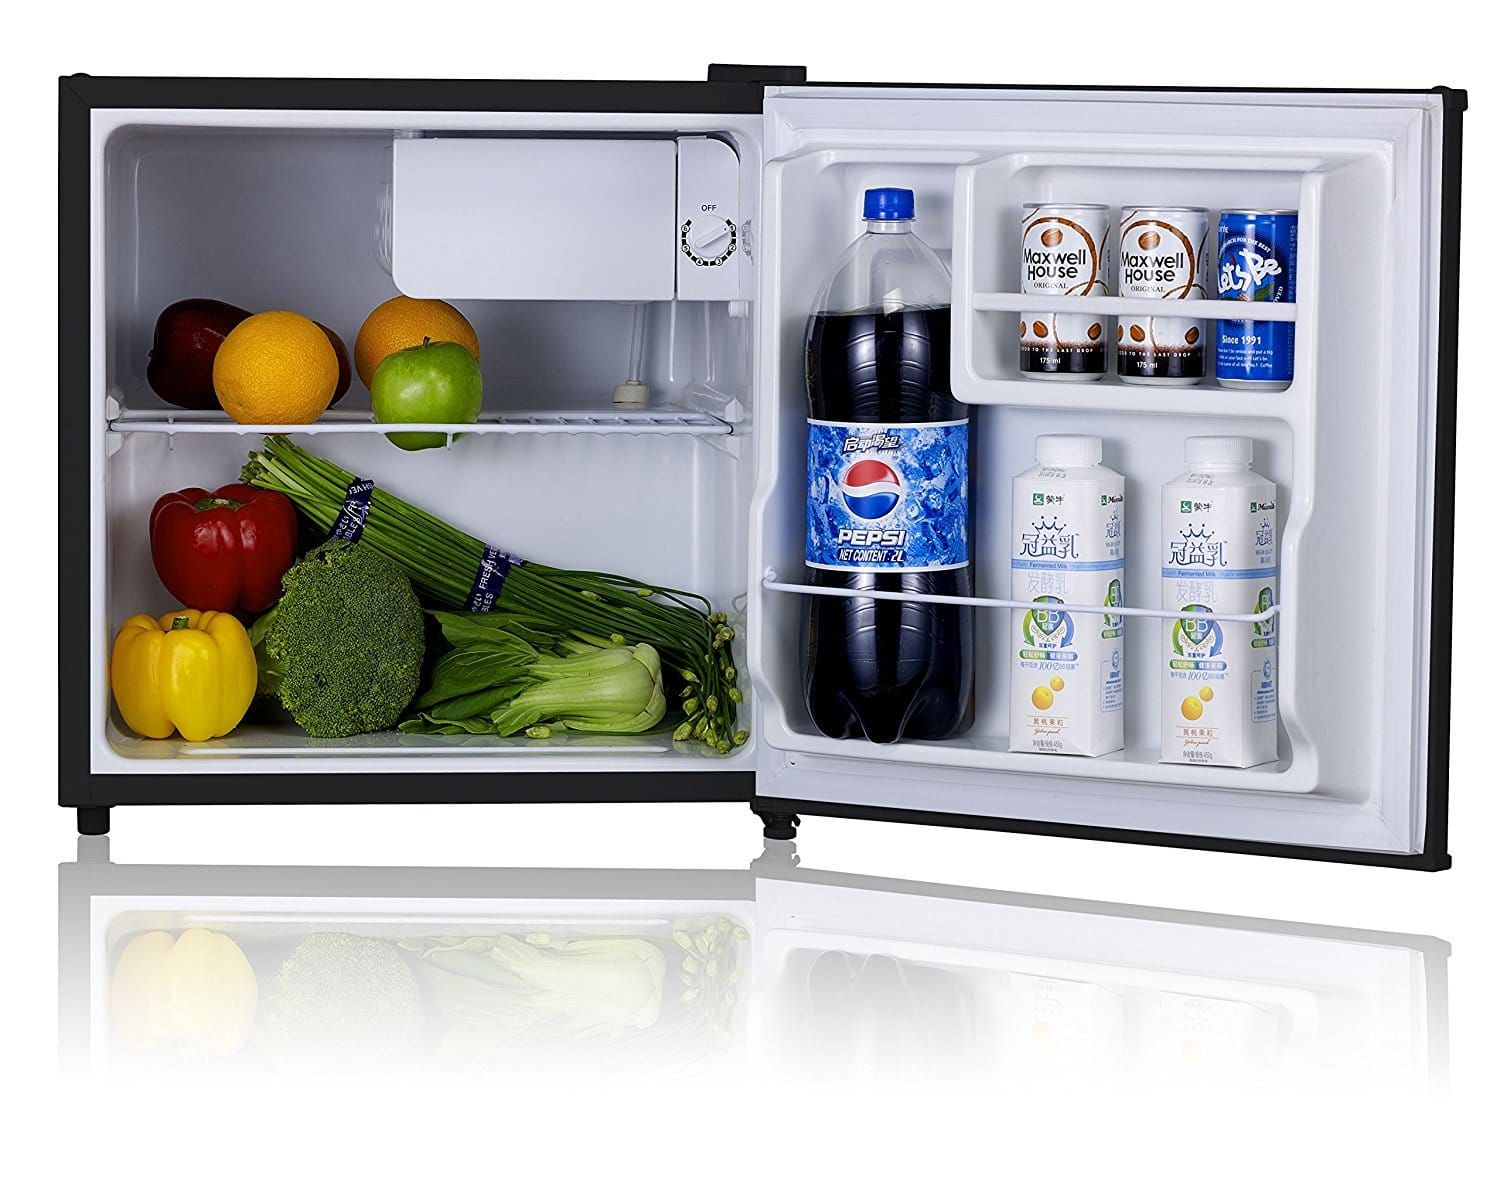 Top 10 Best Mini Freezers In 2020 Reviews A Complete Guide In 2020 Best Refrigerator Stainless Refrigerator